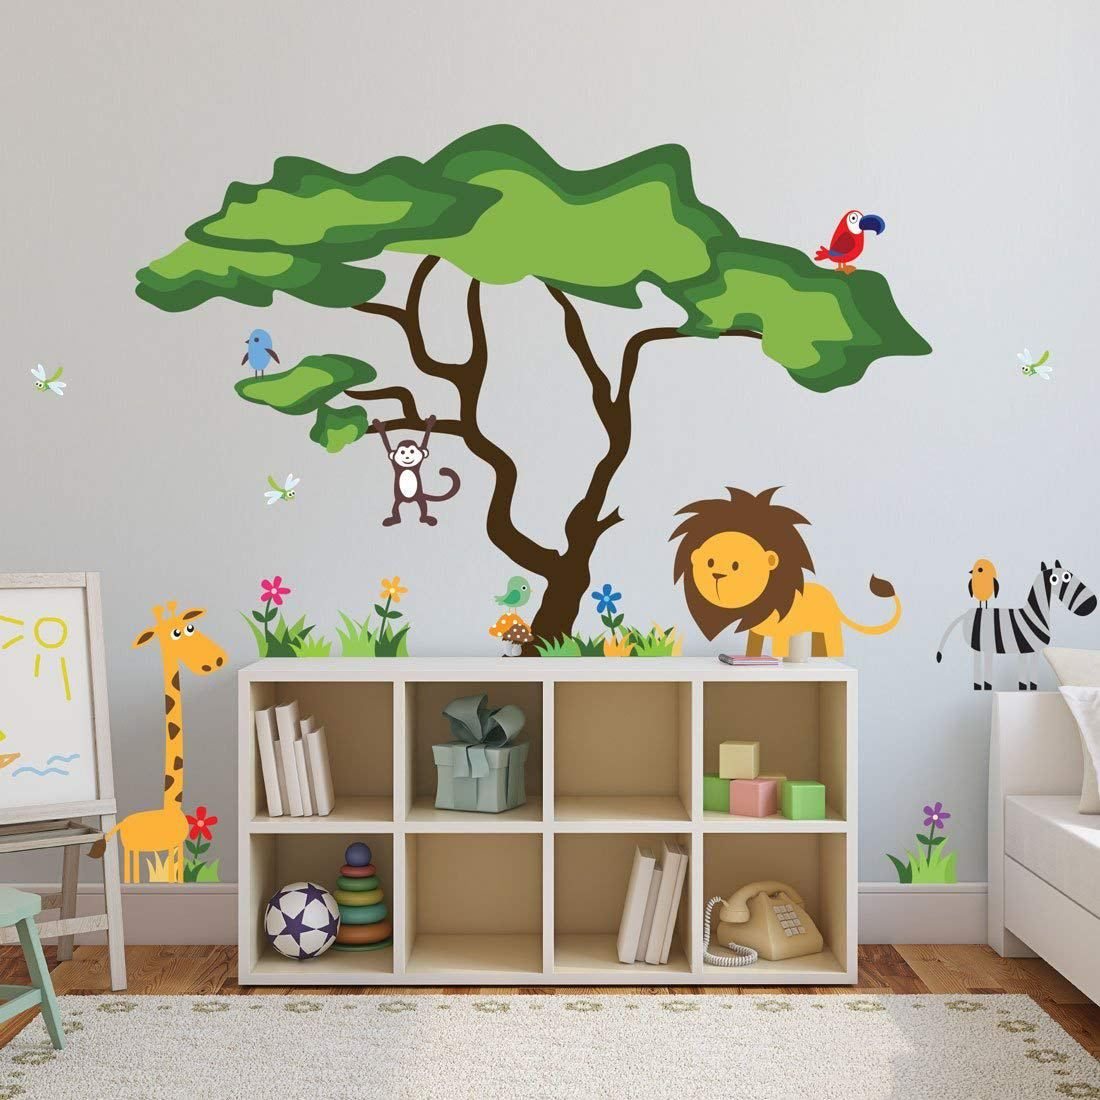 Safari Nursery Idea - Jungle Boy Nursery Theme - Zoo Animals Amorecraftylife.com #baby #nursery | Safari Theme Nursery, Boy Nursery Themes, Nursery Room Boy